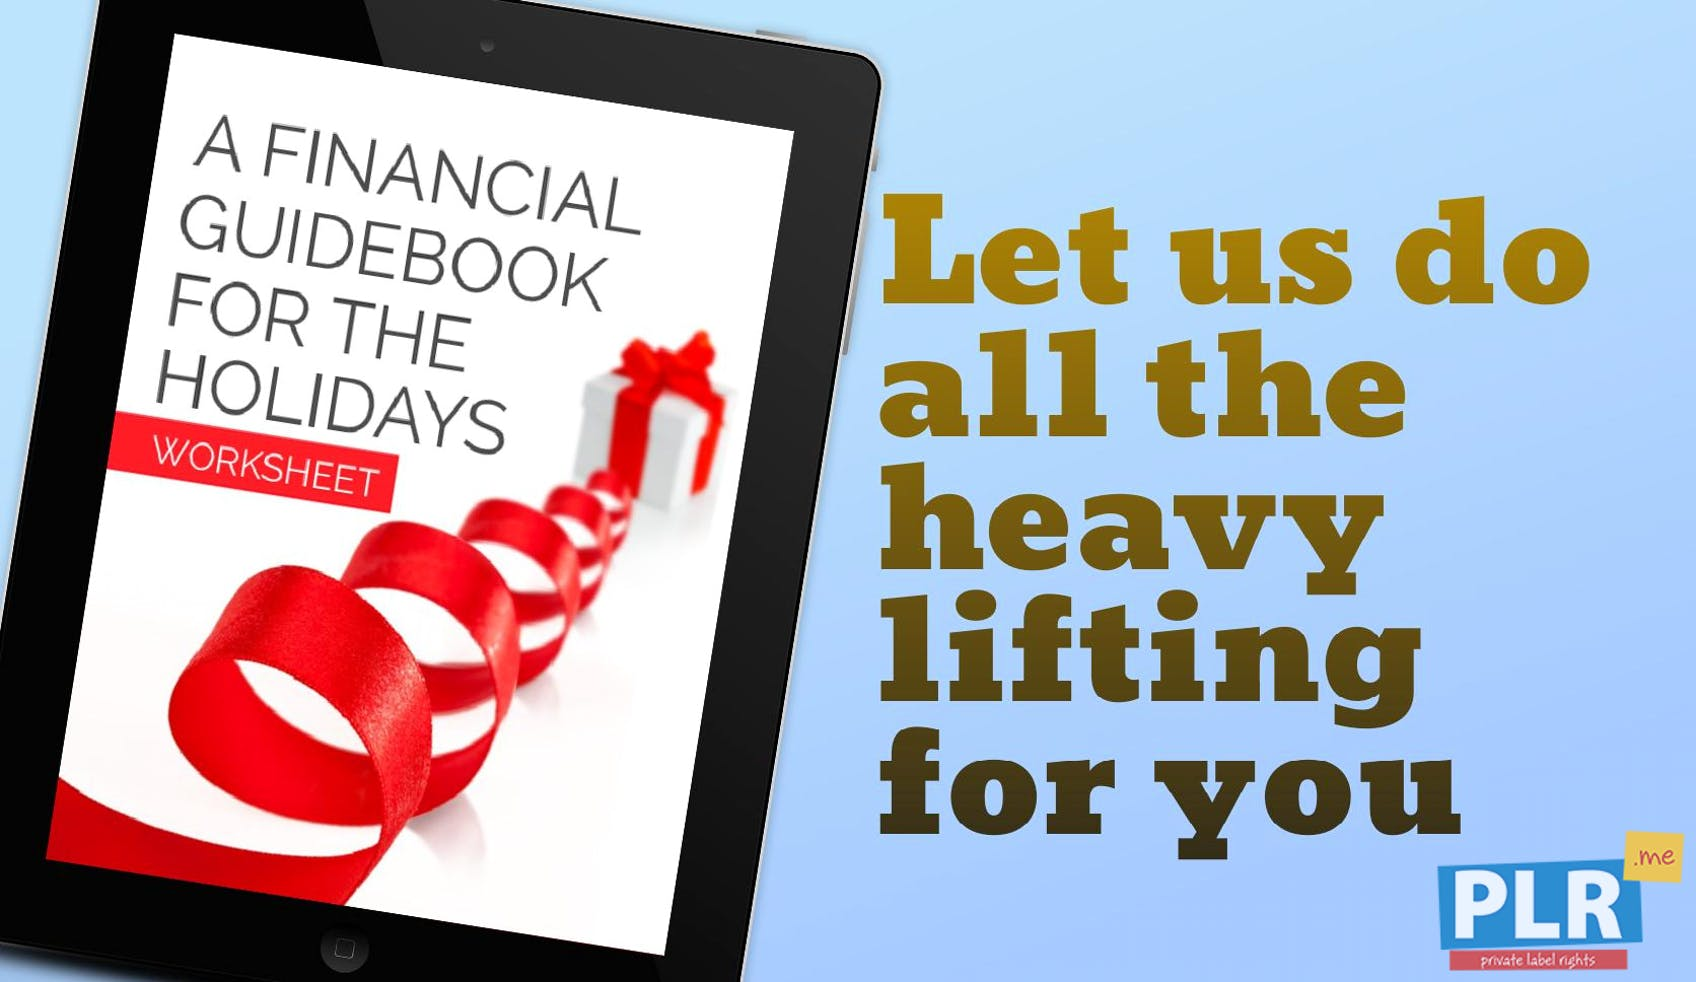 A Financial Guidebook For The Holidays Worksheet